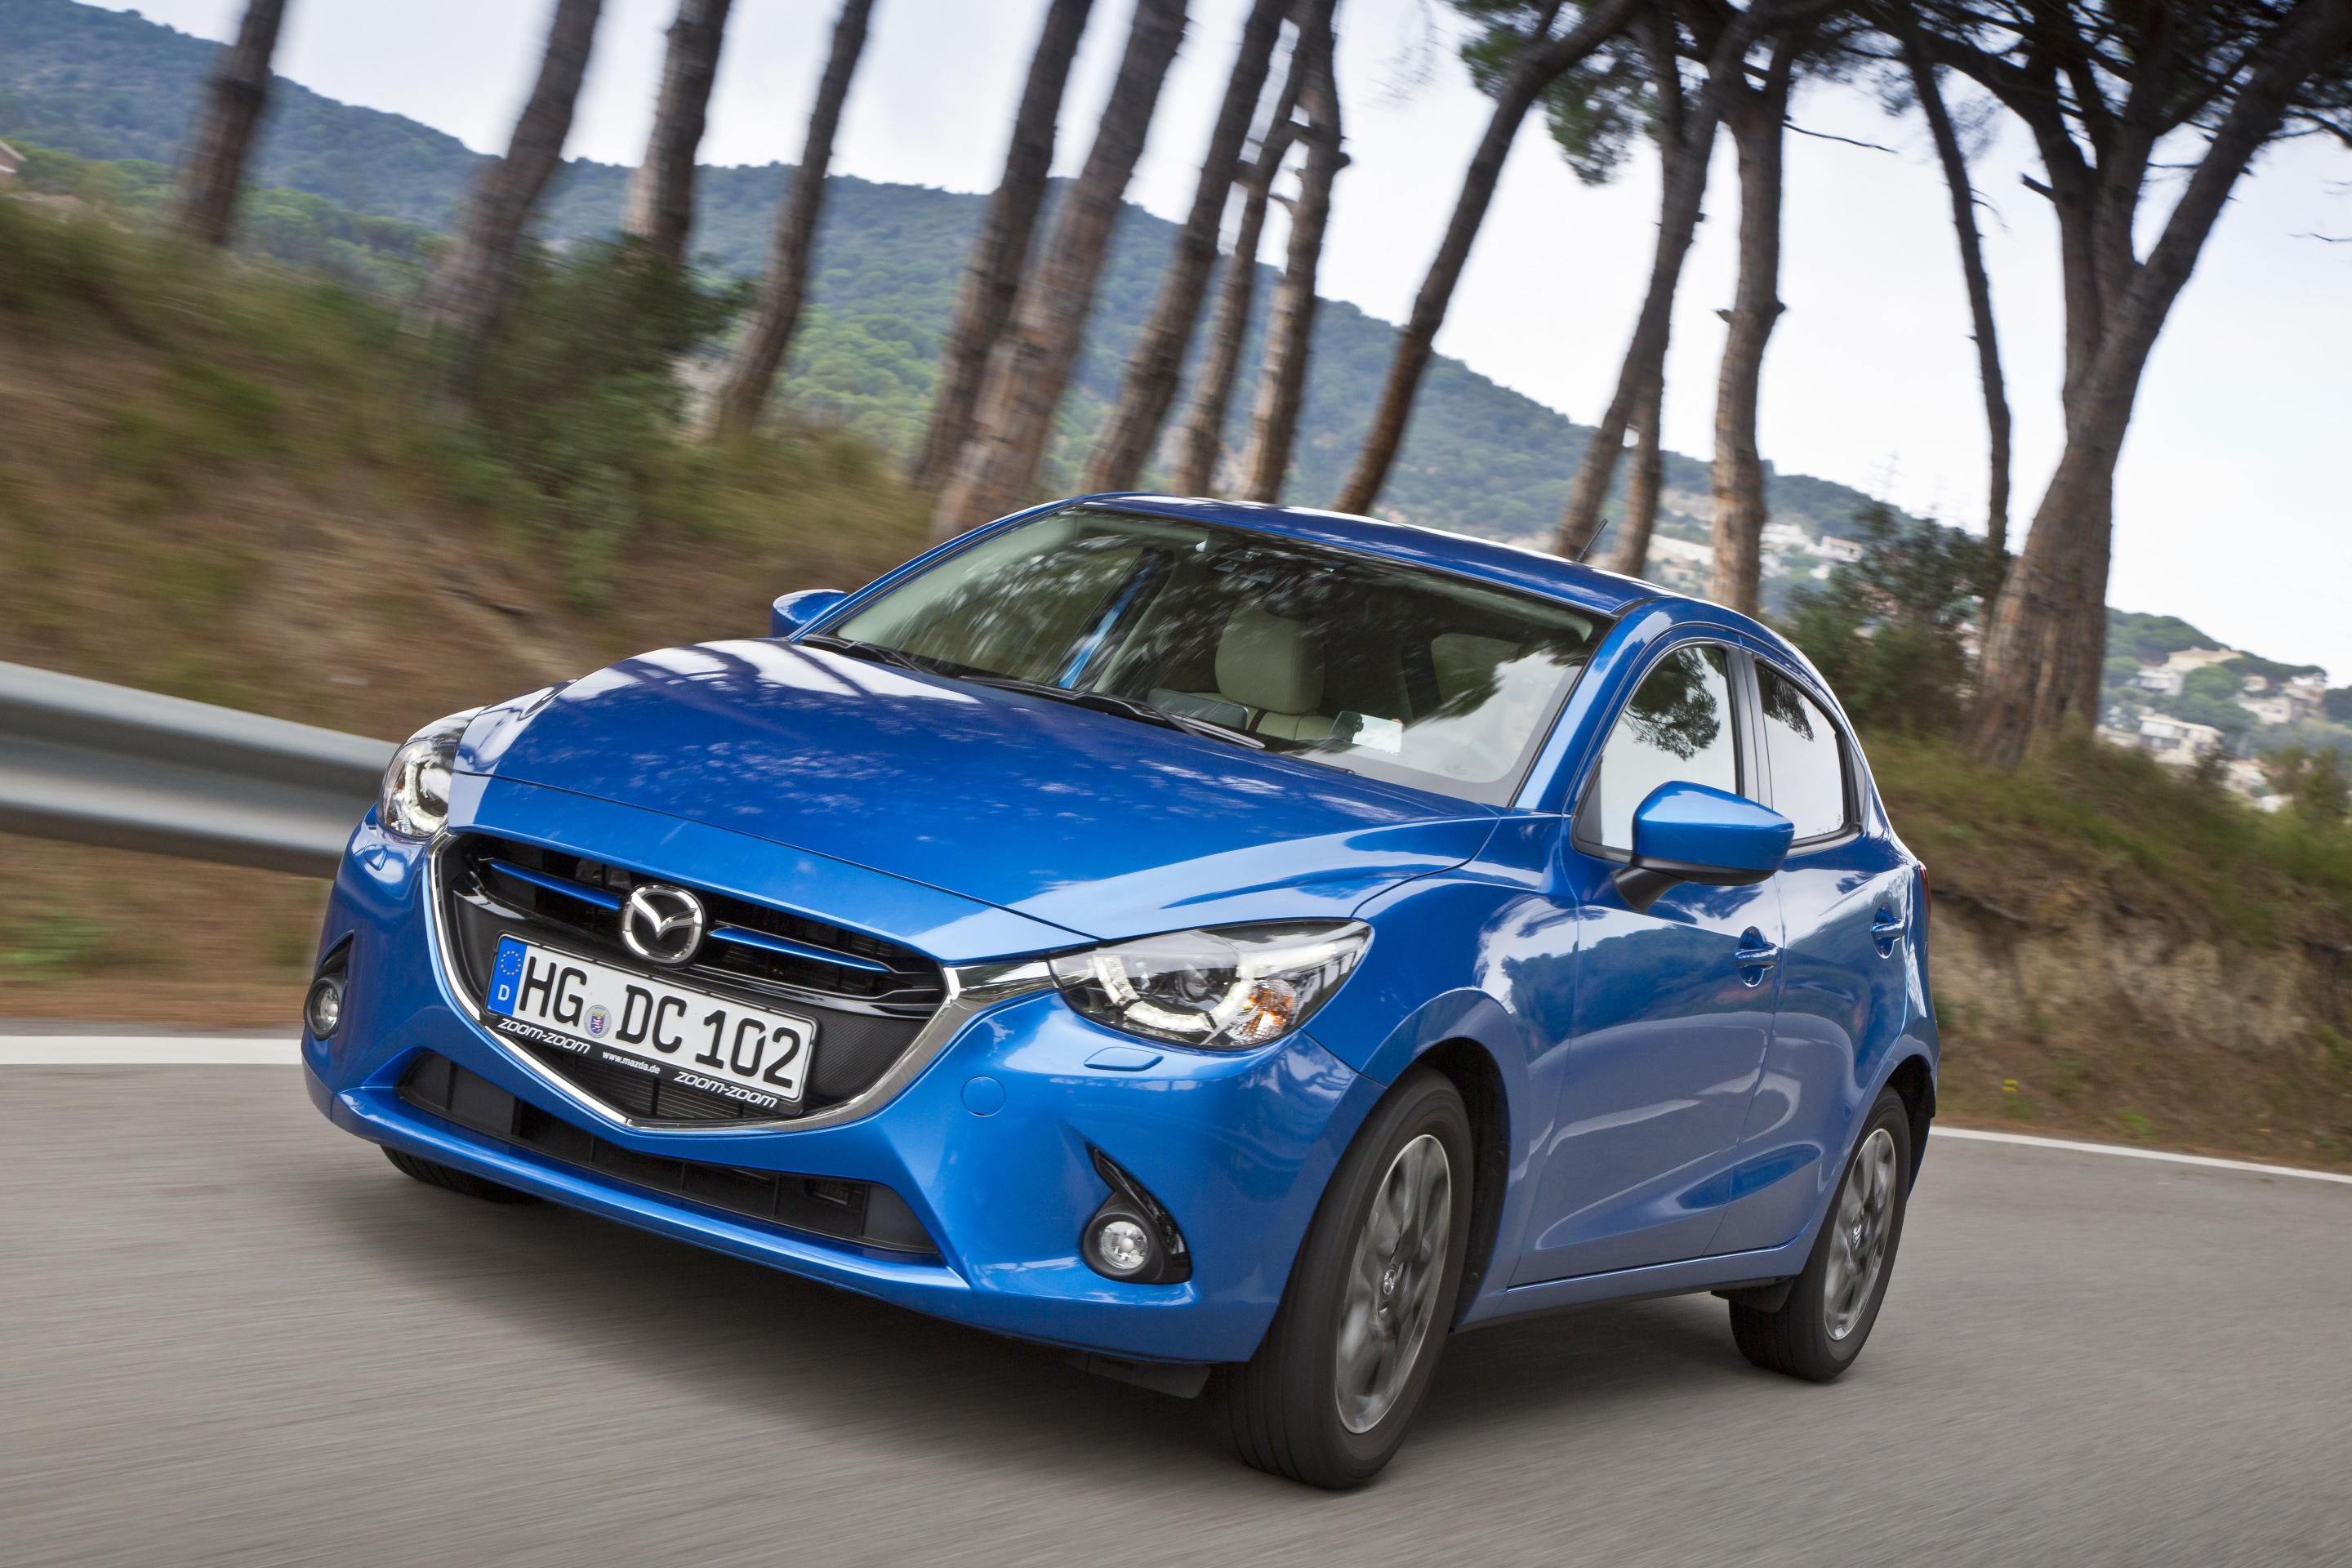 https://s1.cdn.autoevolution.com/images/news/2015-mazda2-sports-launch-edition-bundles-many-for-14995-photo-gallery-91153_1.jpg